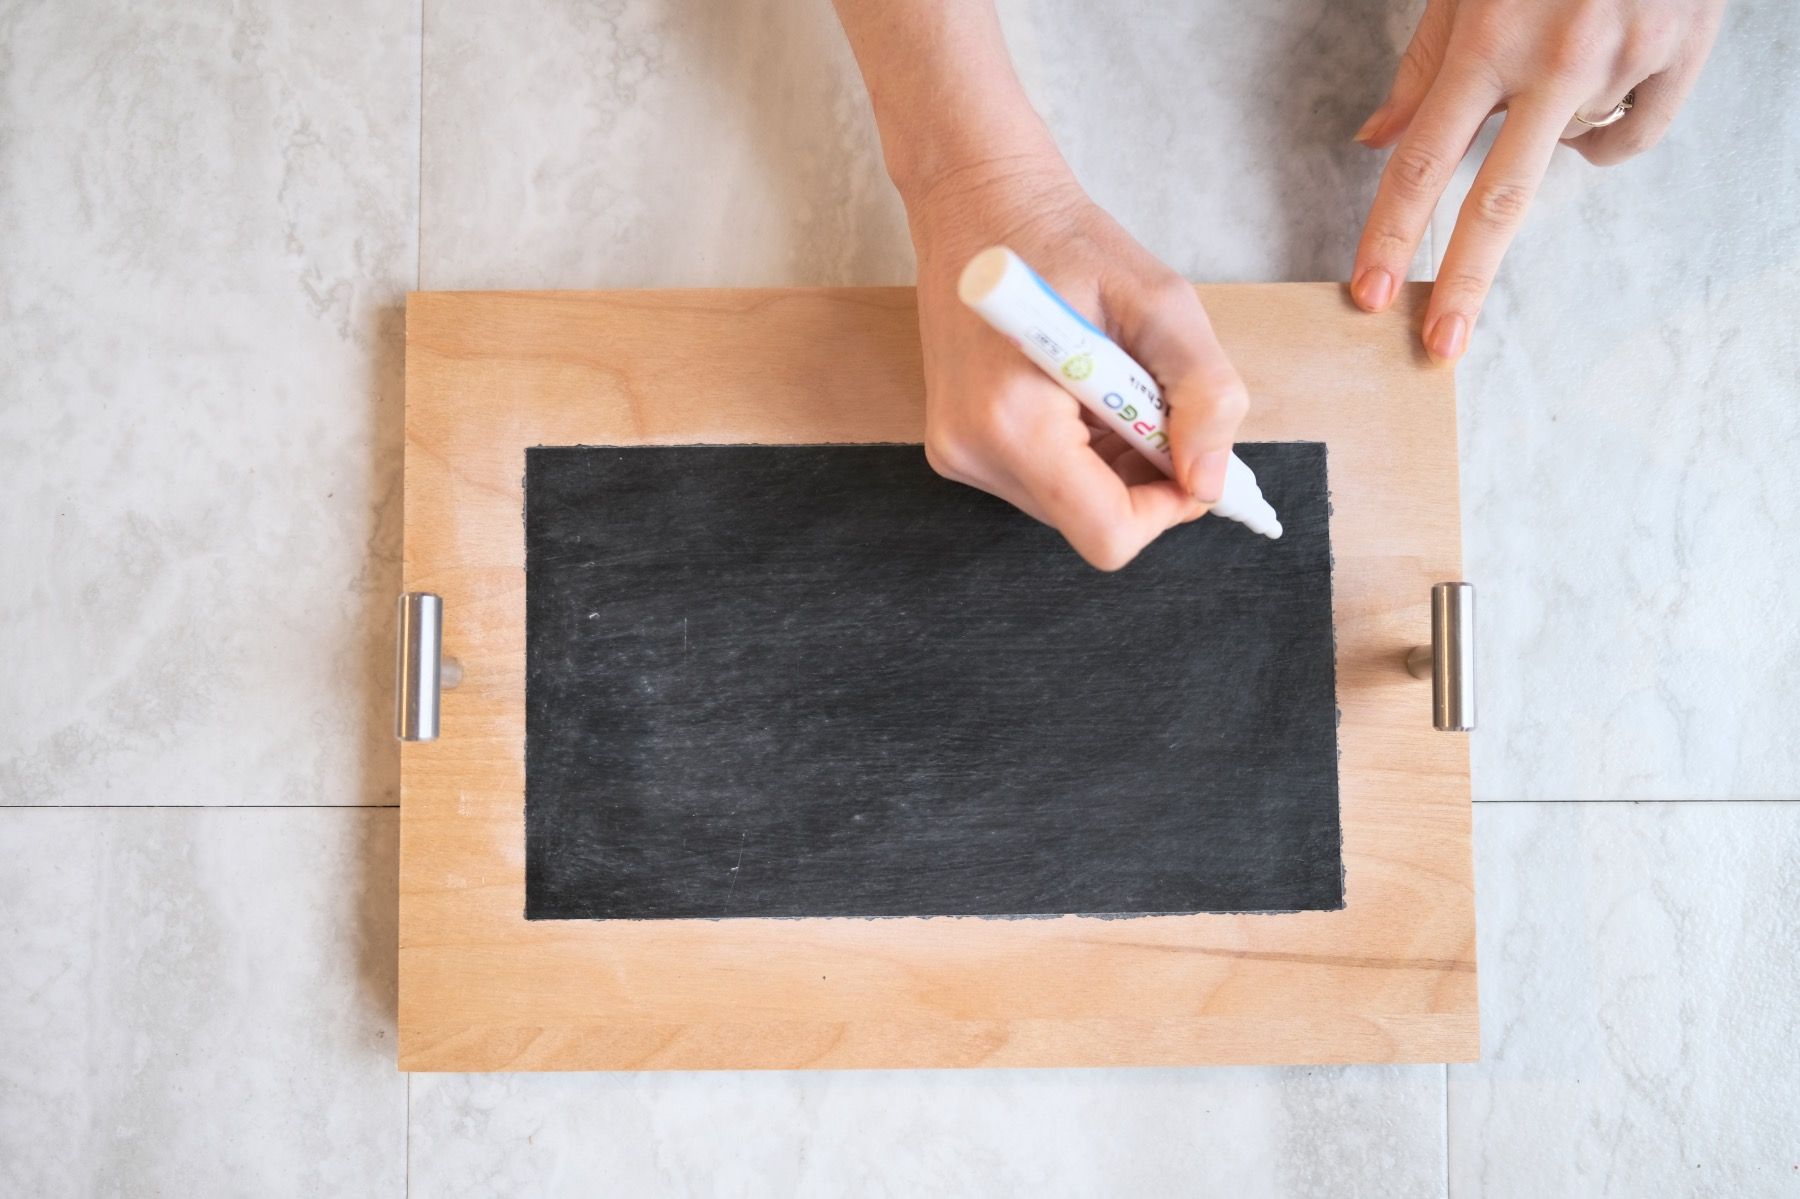 use a chalk pen on the chalkboard serving tray